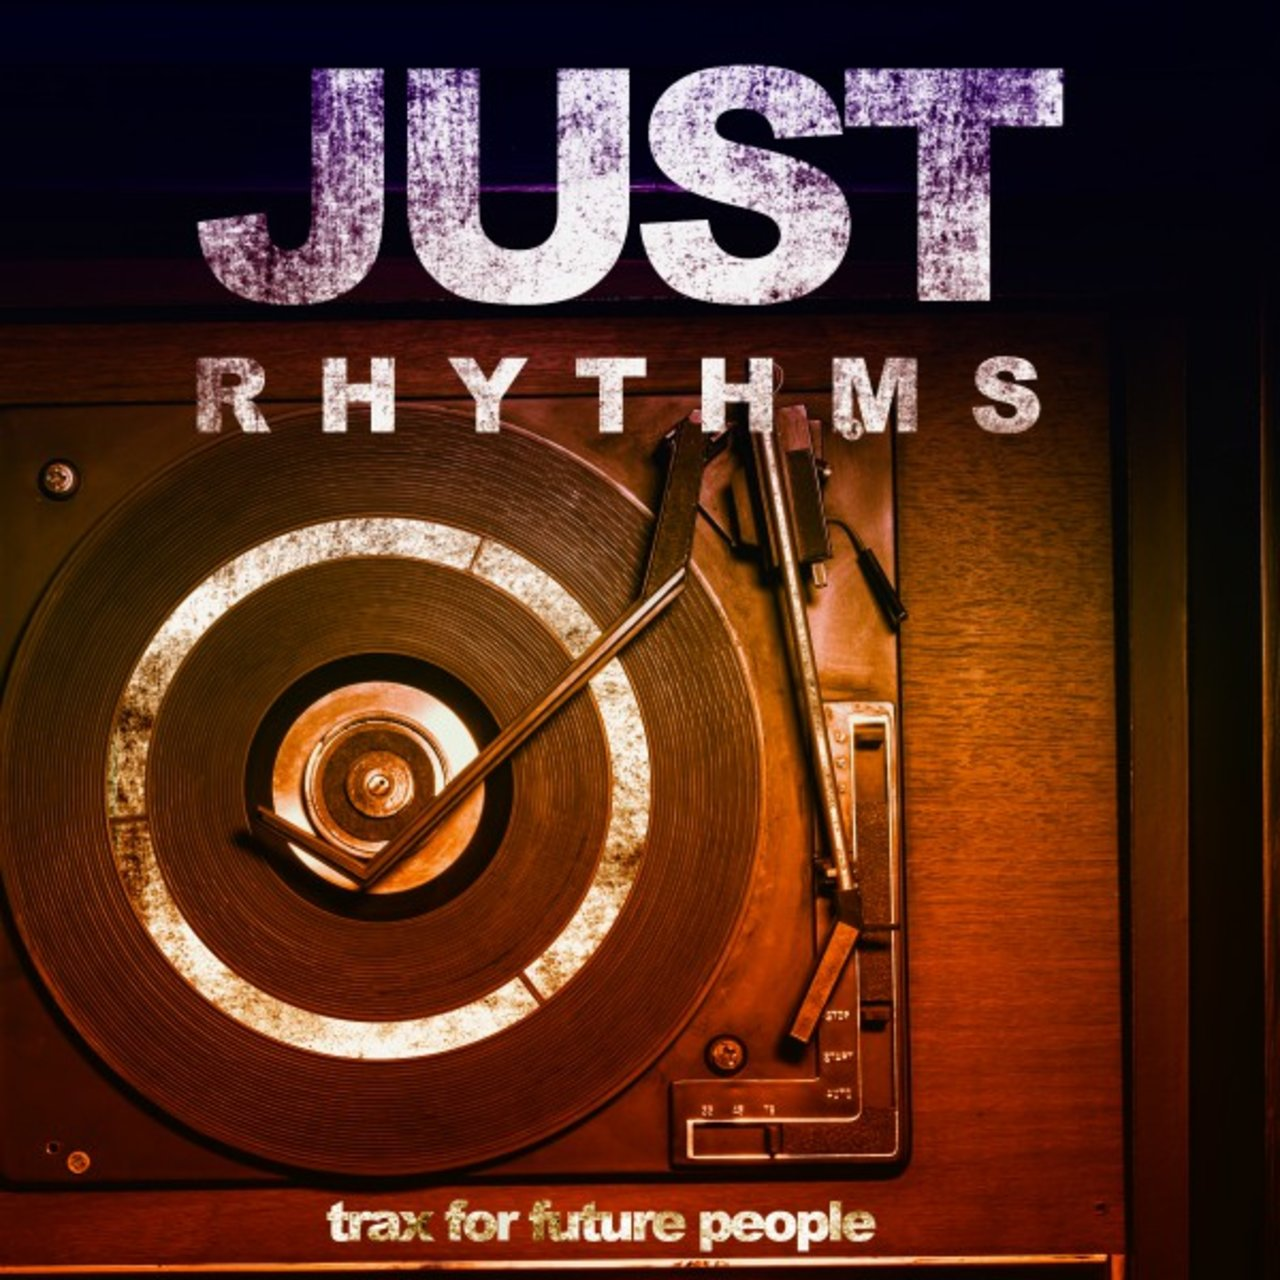 Just Rhythms (Trax for Future People)